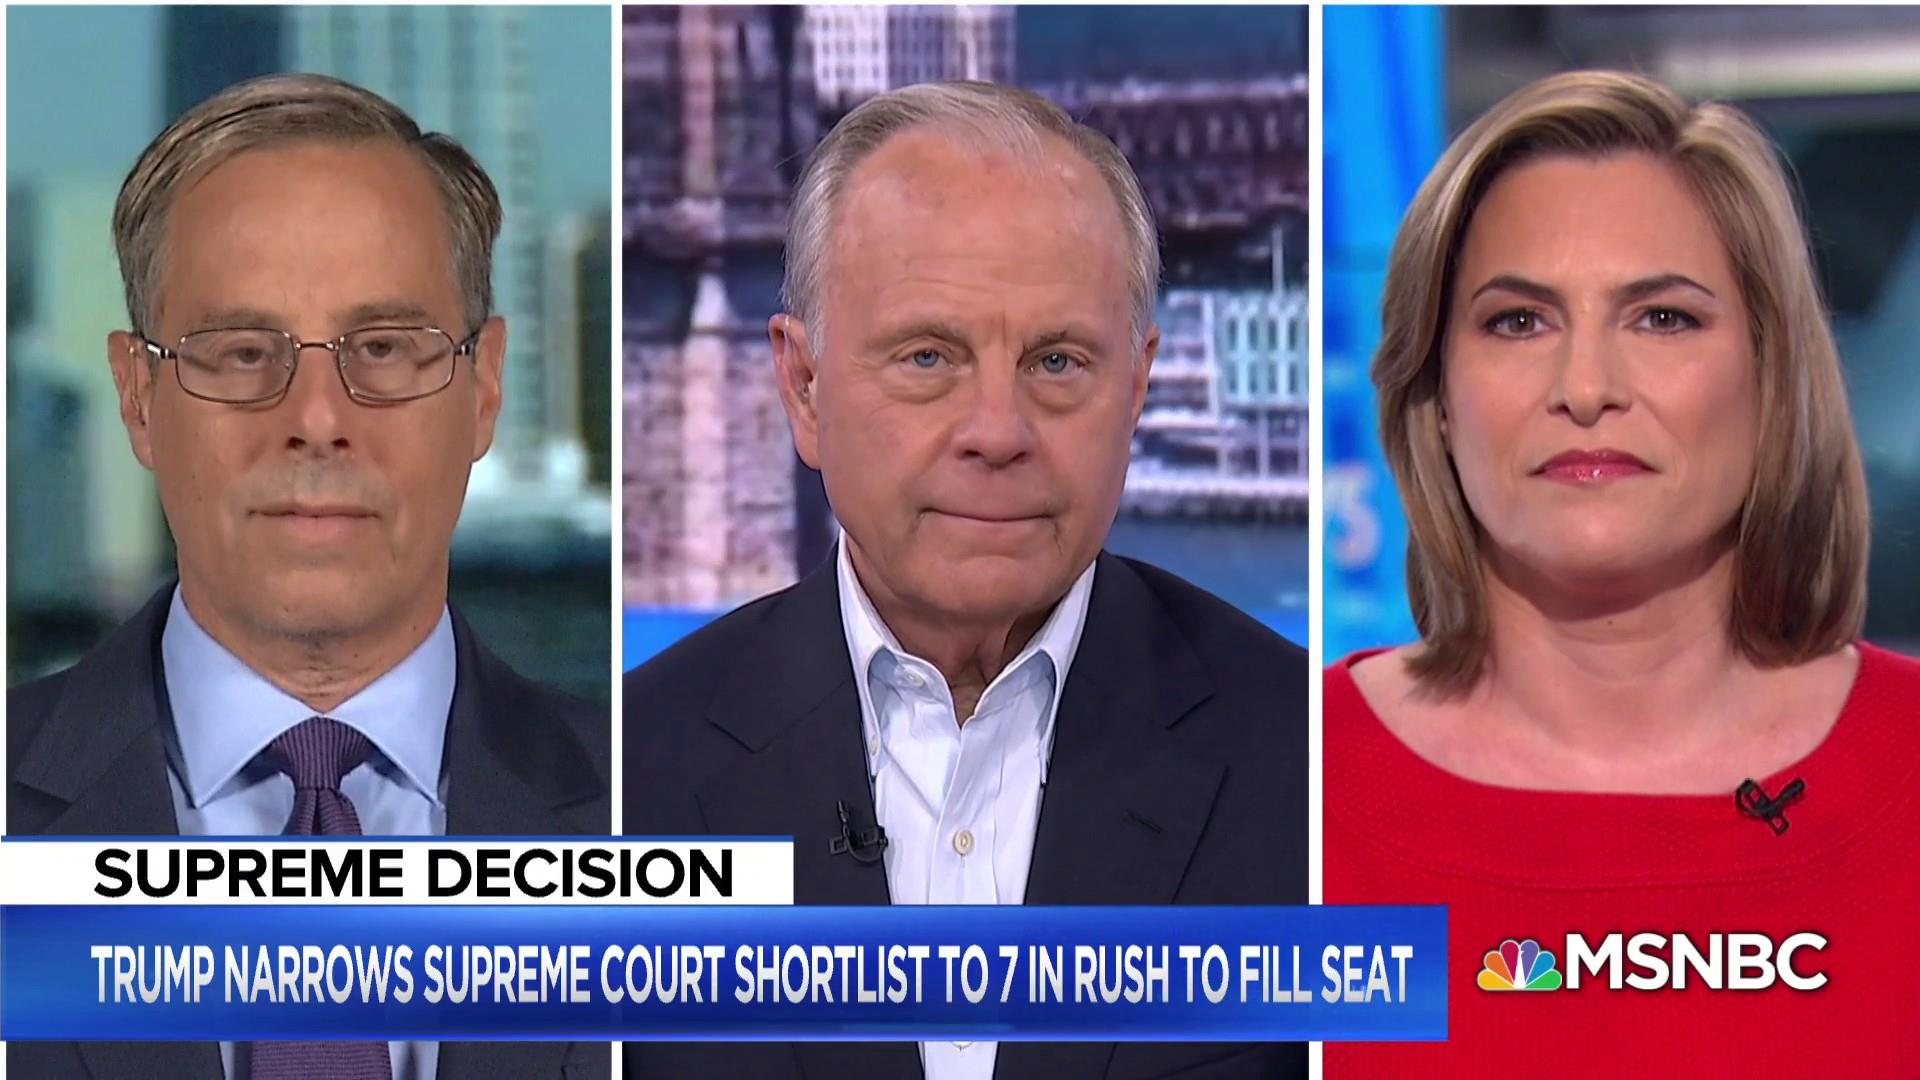 A closer look into Trump's Supreme Court shortlist